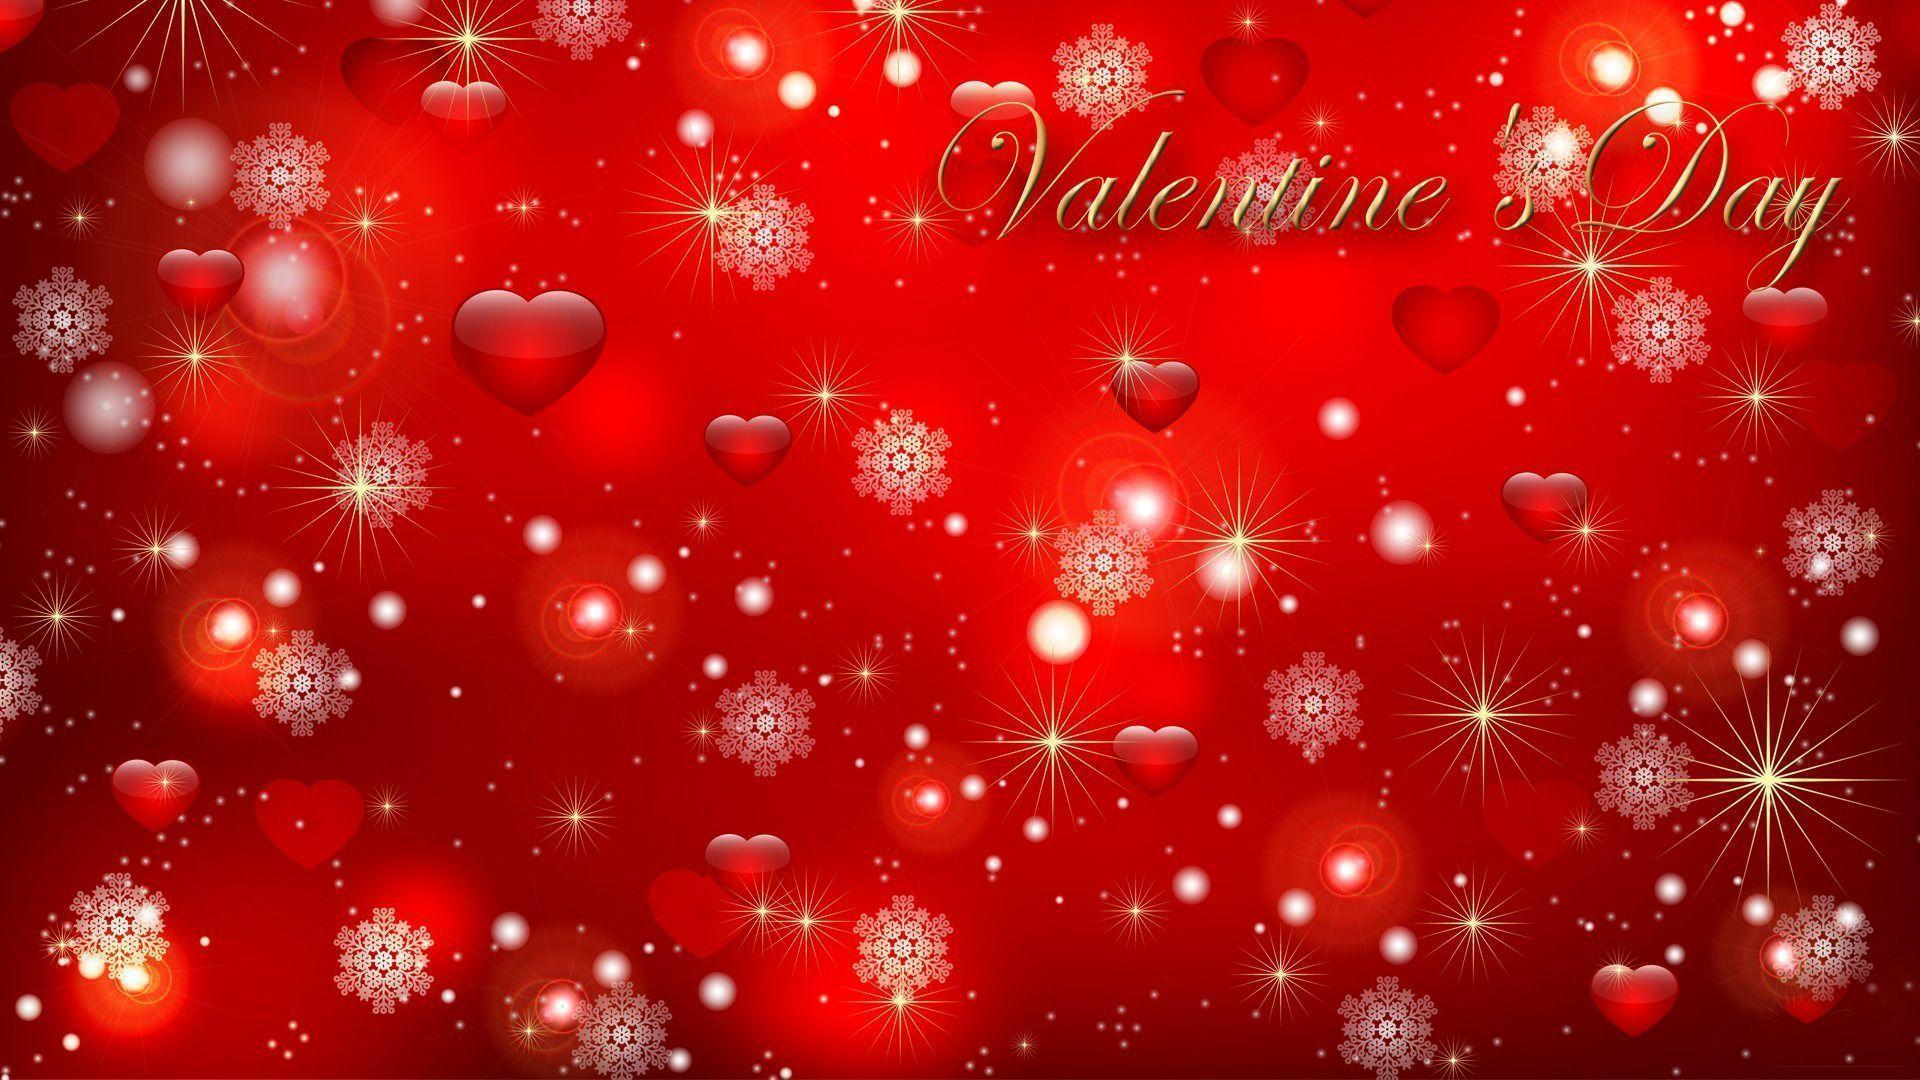 Valentines Wallpapers - Wallpaper Cave